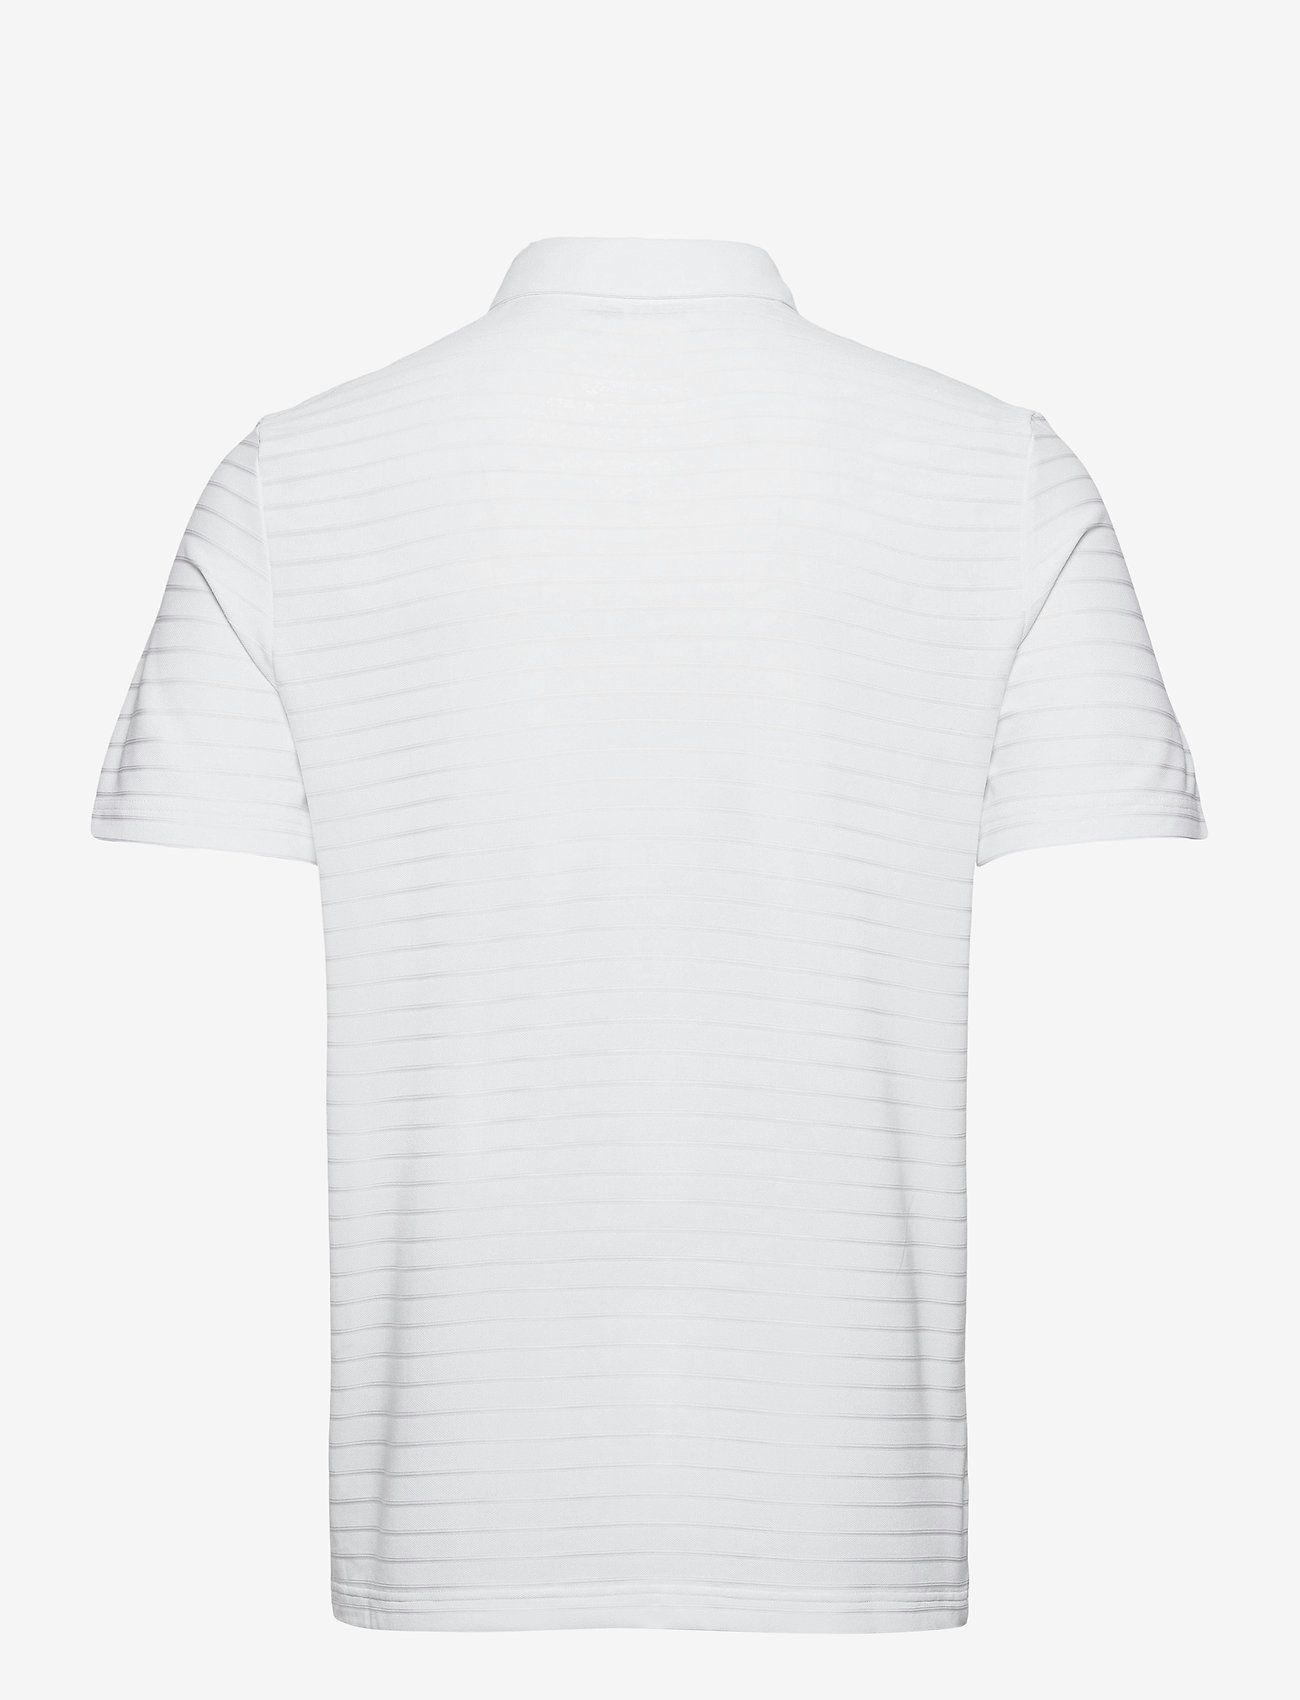 Lacoste - Men s S/S polo - kortærmede - white - 1